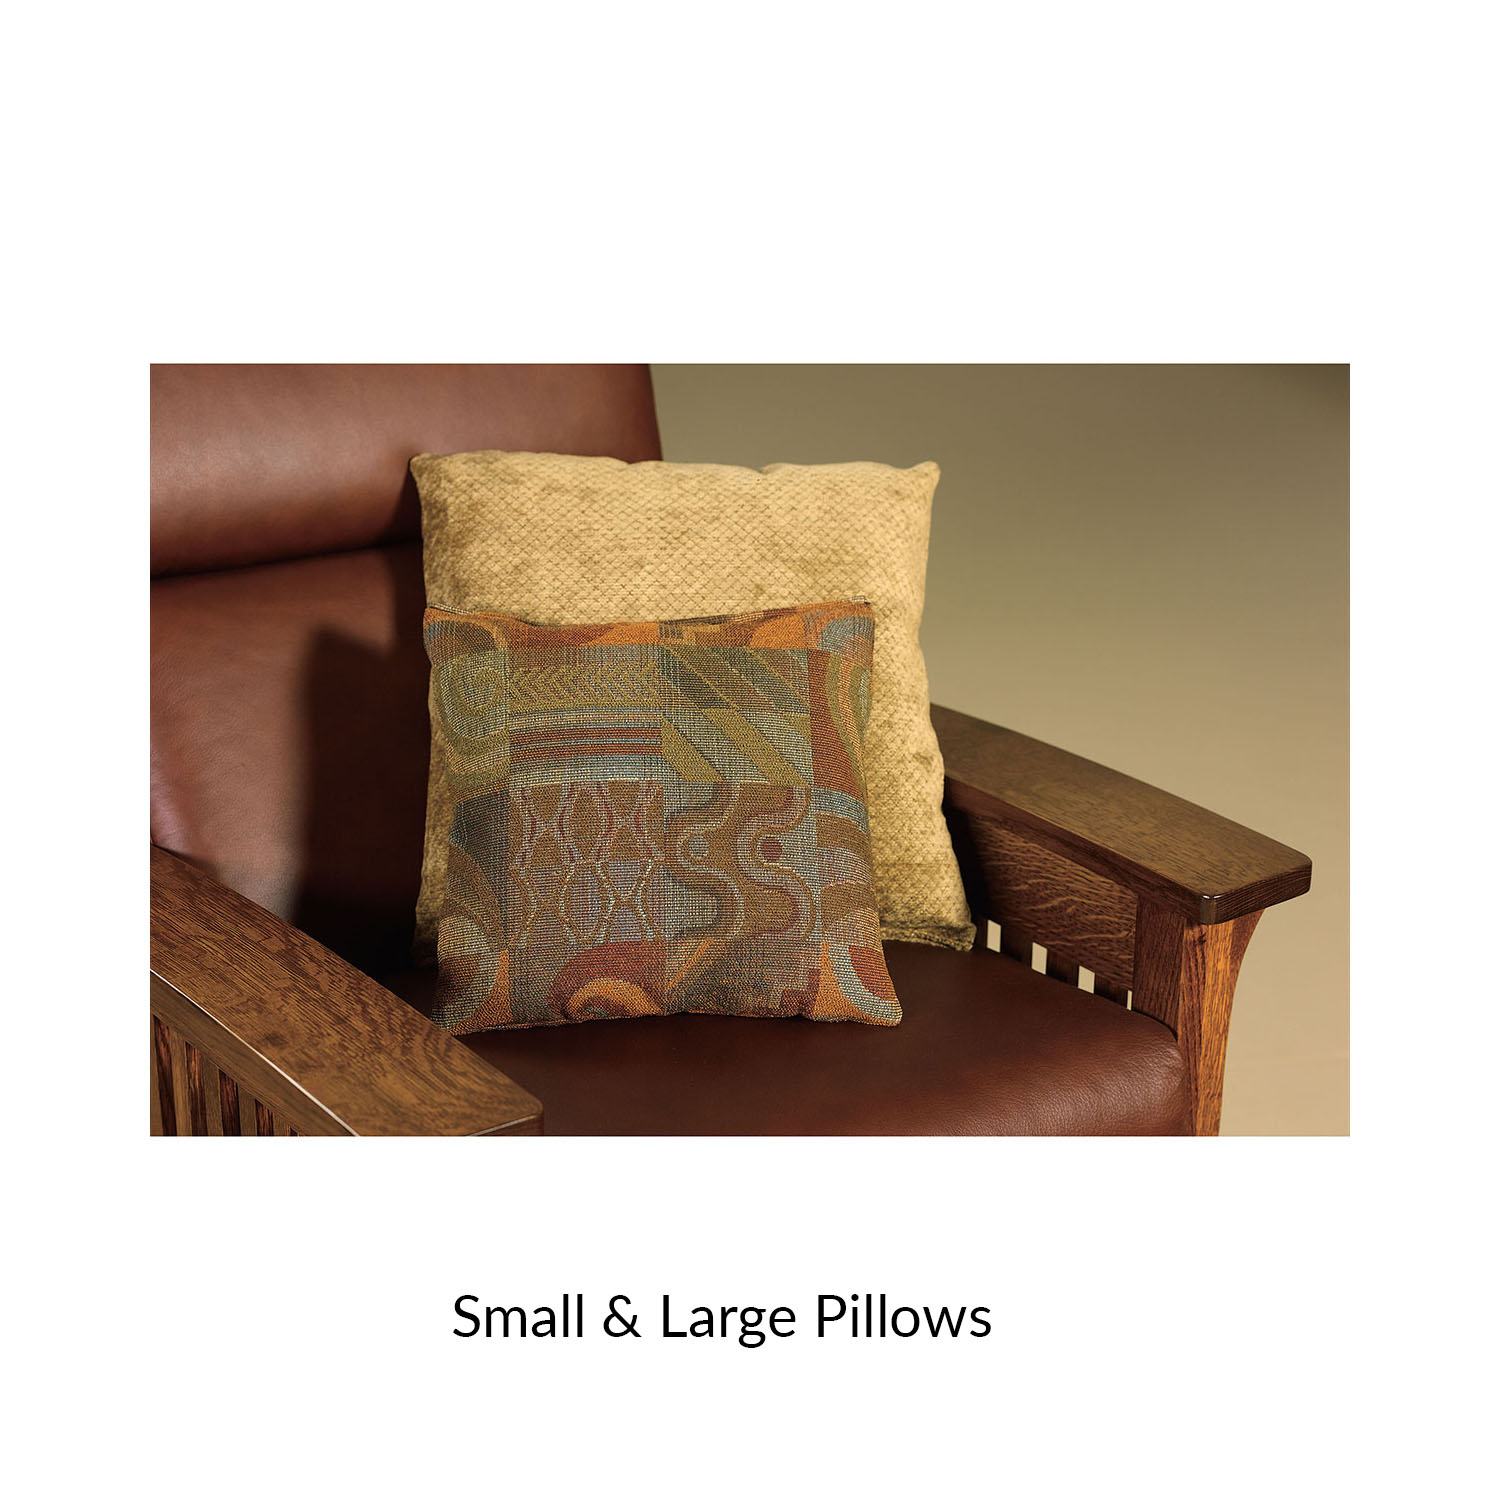 small-large-pillows.jpg